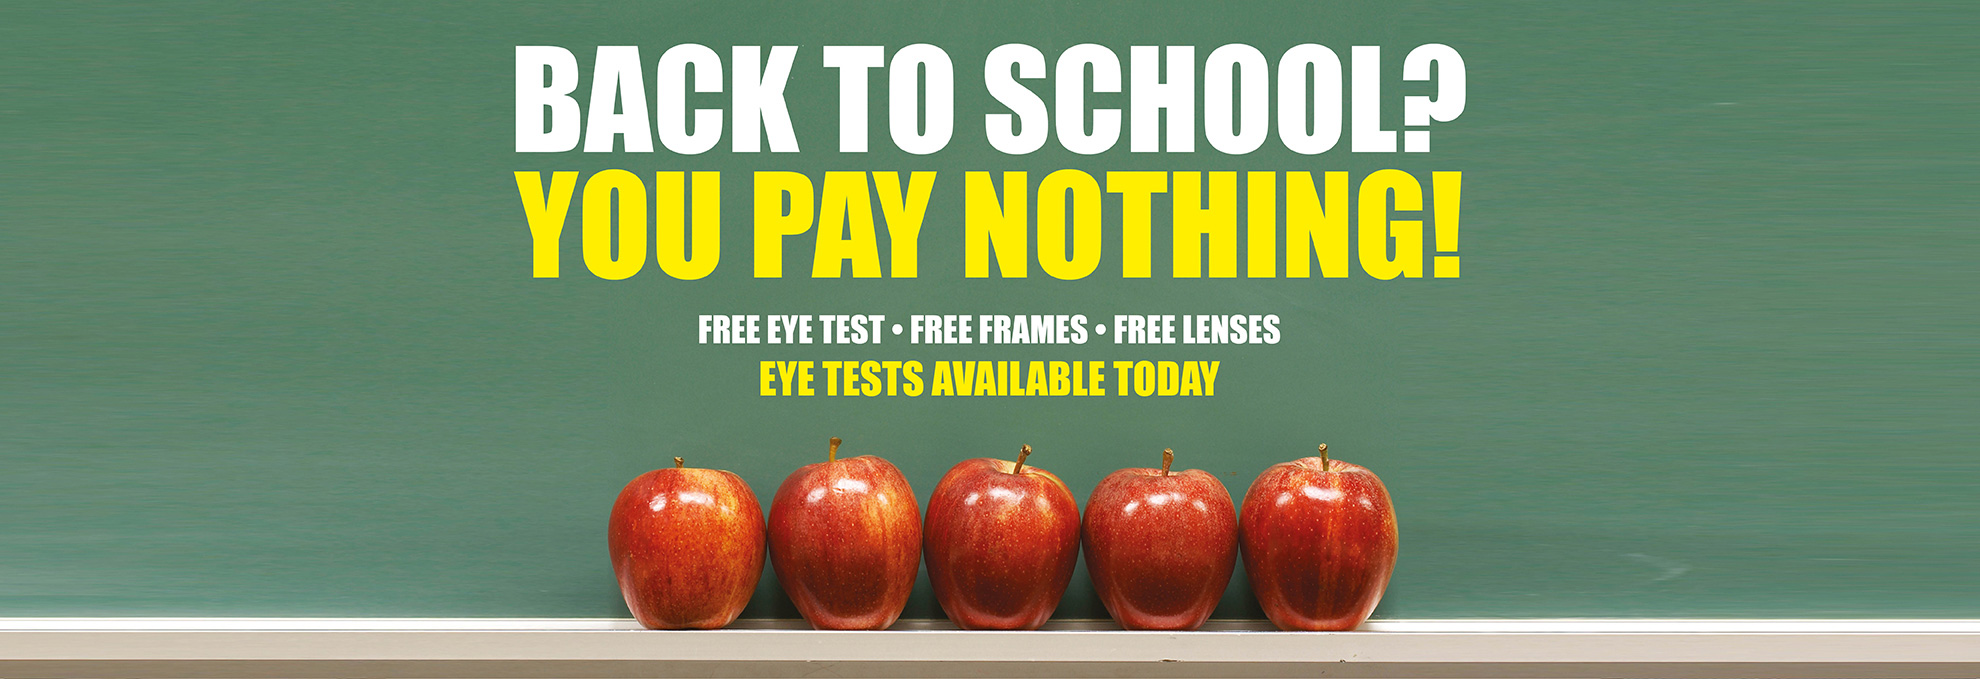 Back to School?  You Pay Nothing!